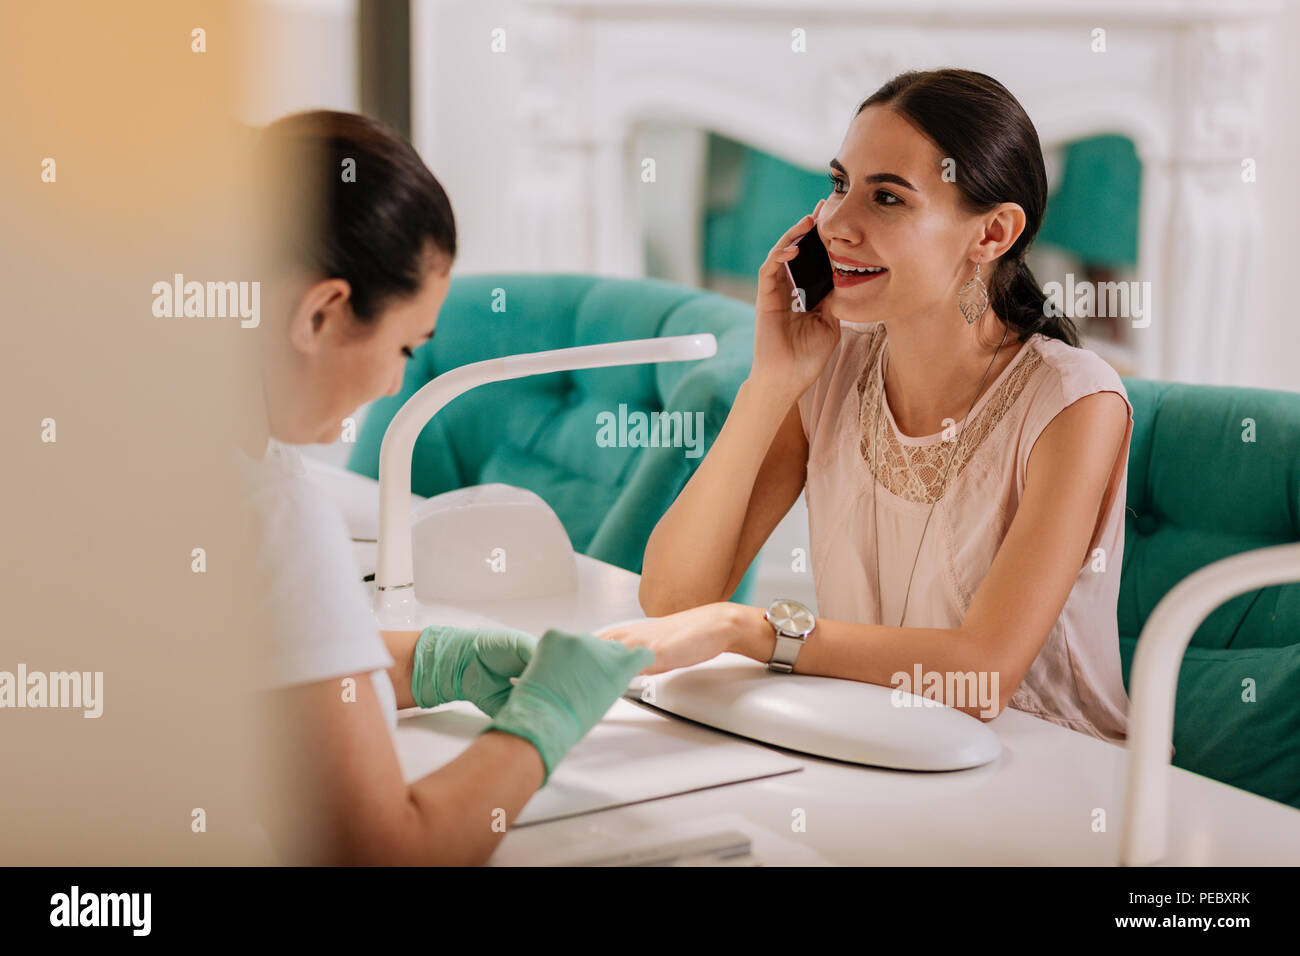 Busy businesswoman speaking on the telephone while having manicure - Stock Image